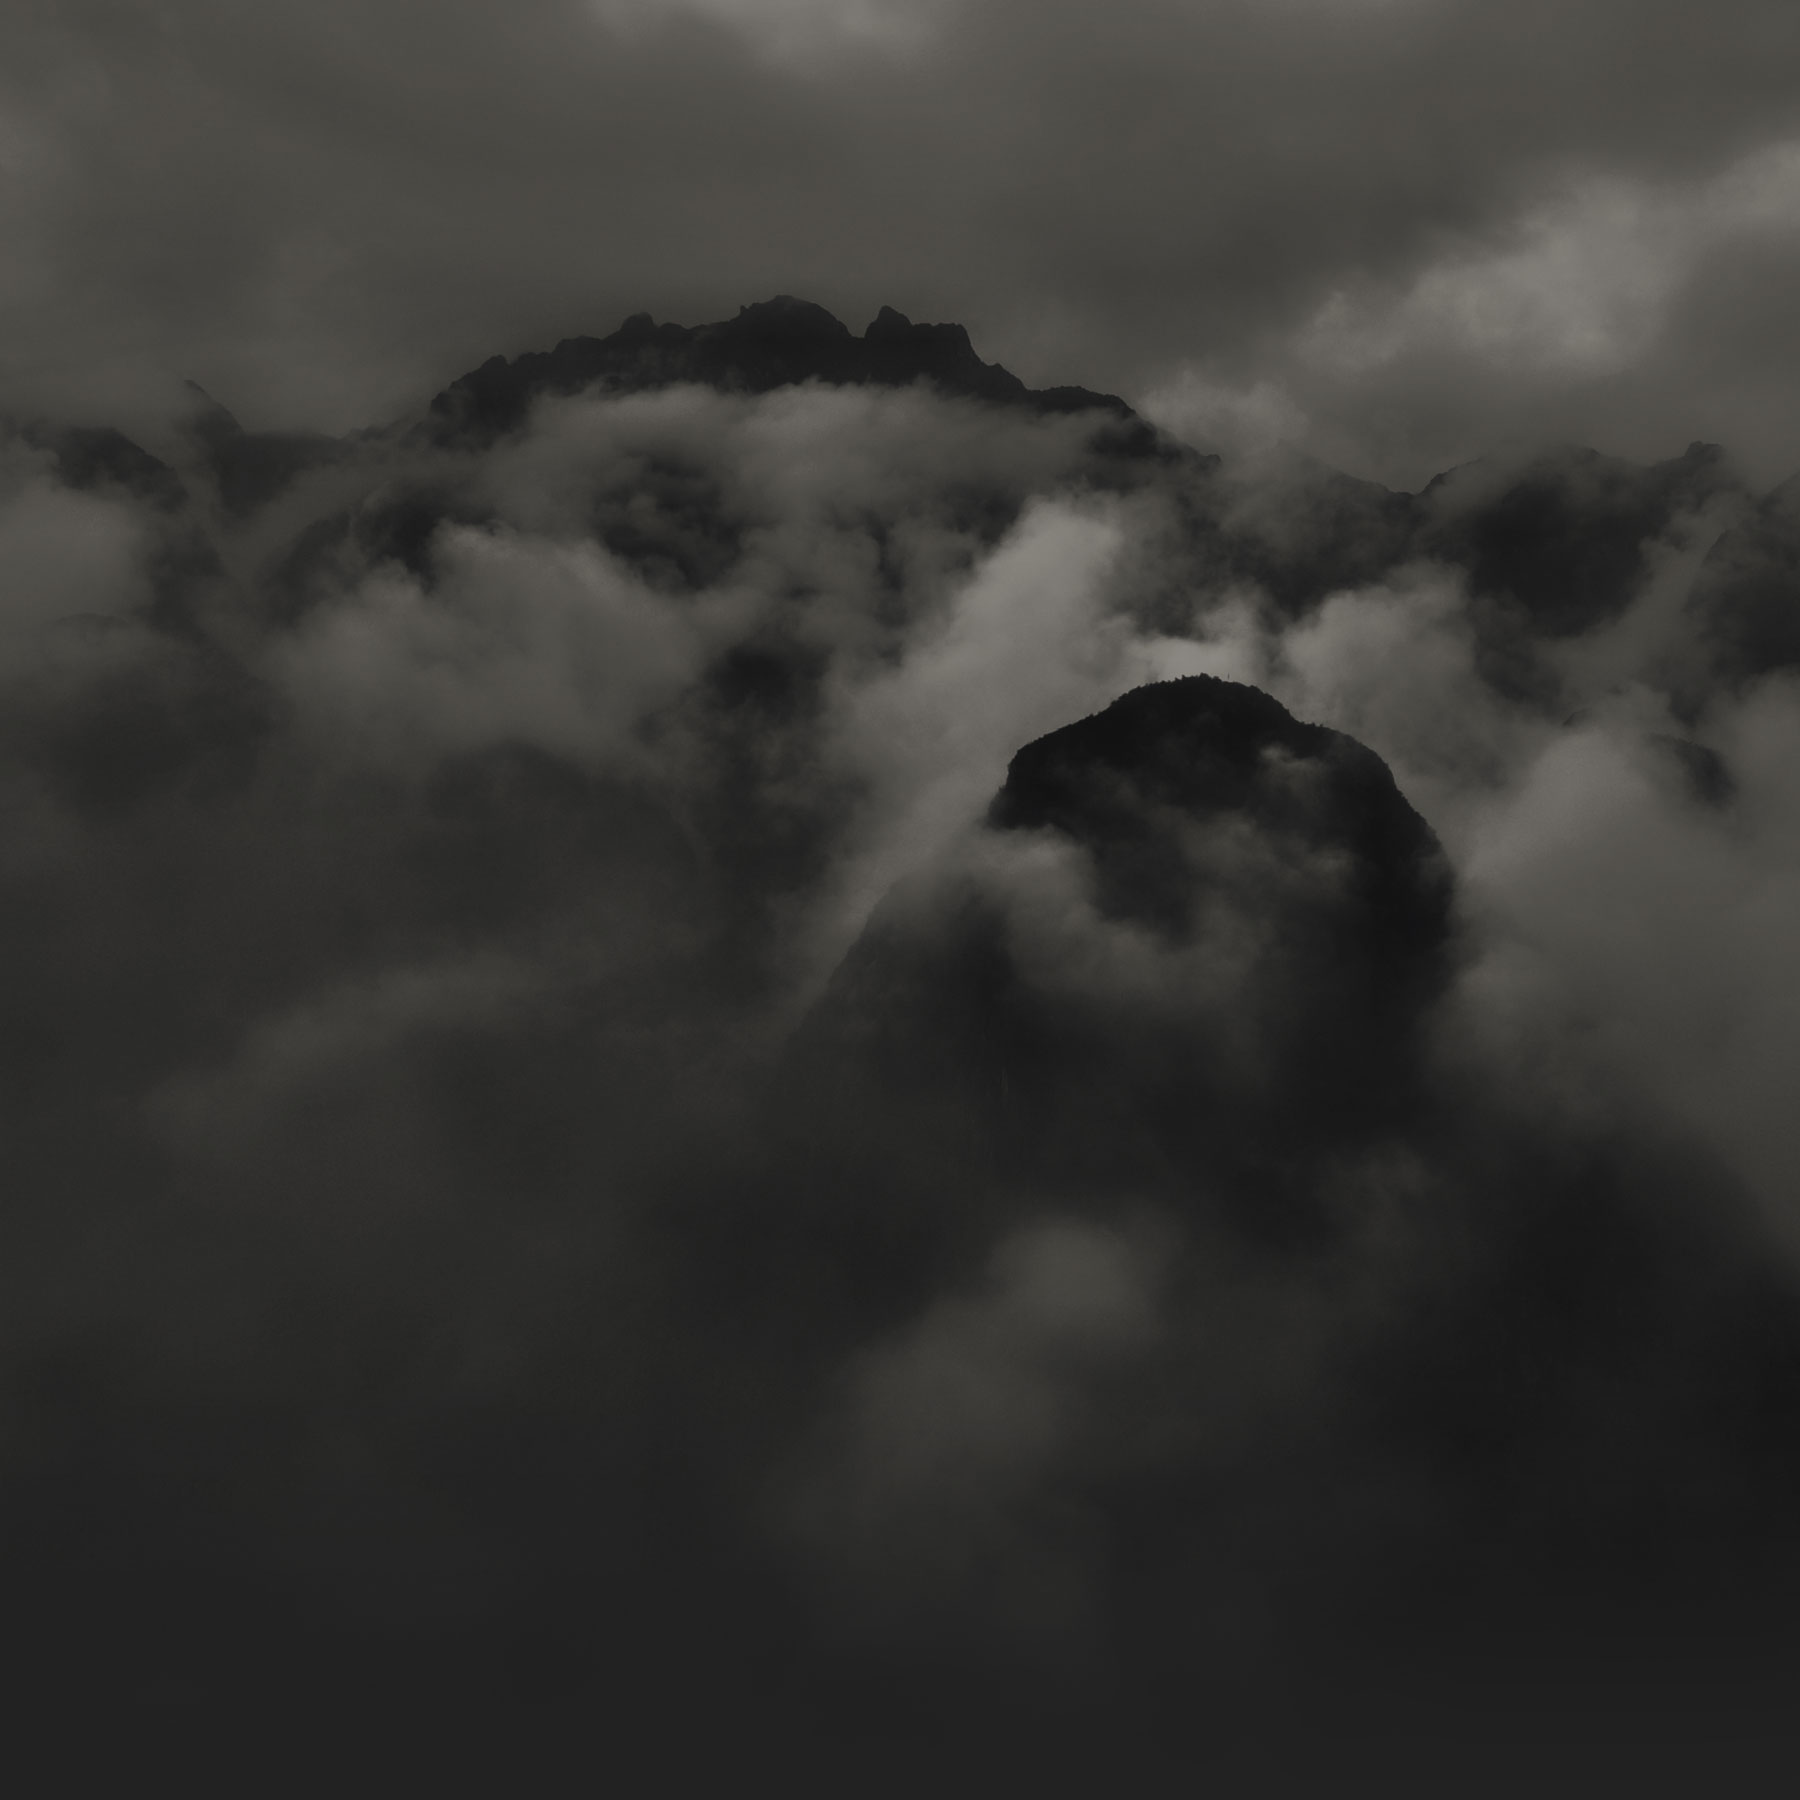 Dark Shadow in the Mountains 454.03 Kb